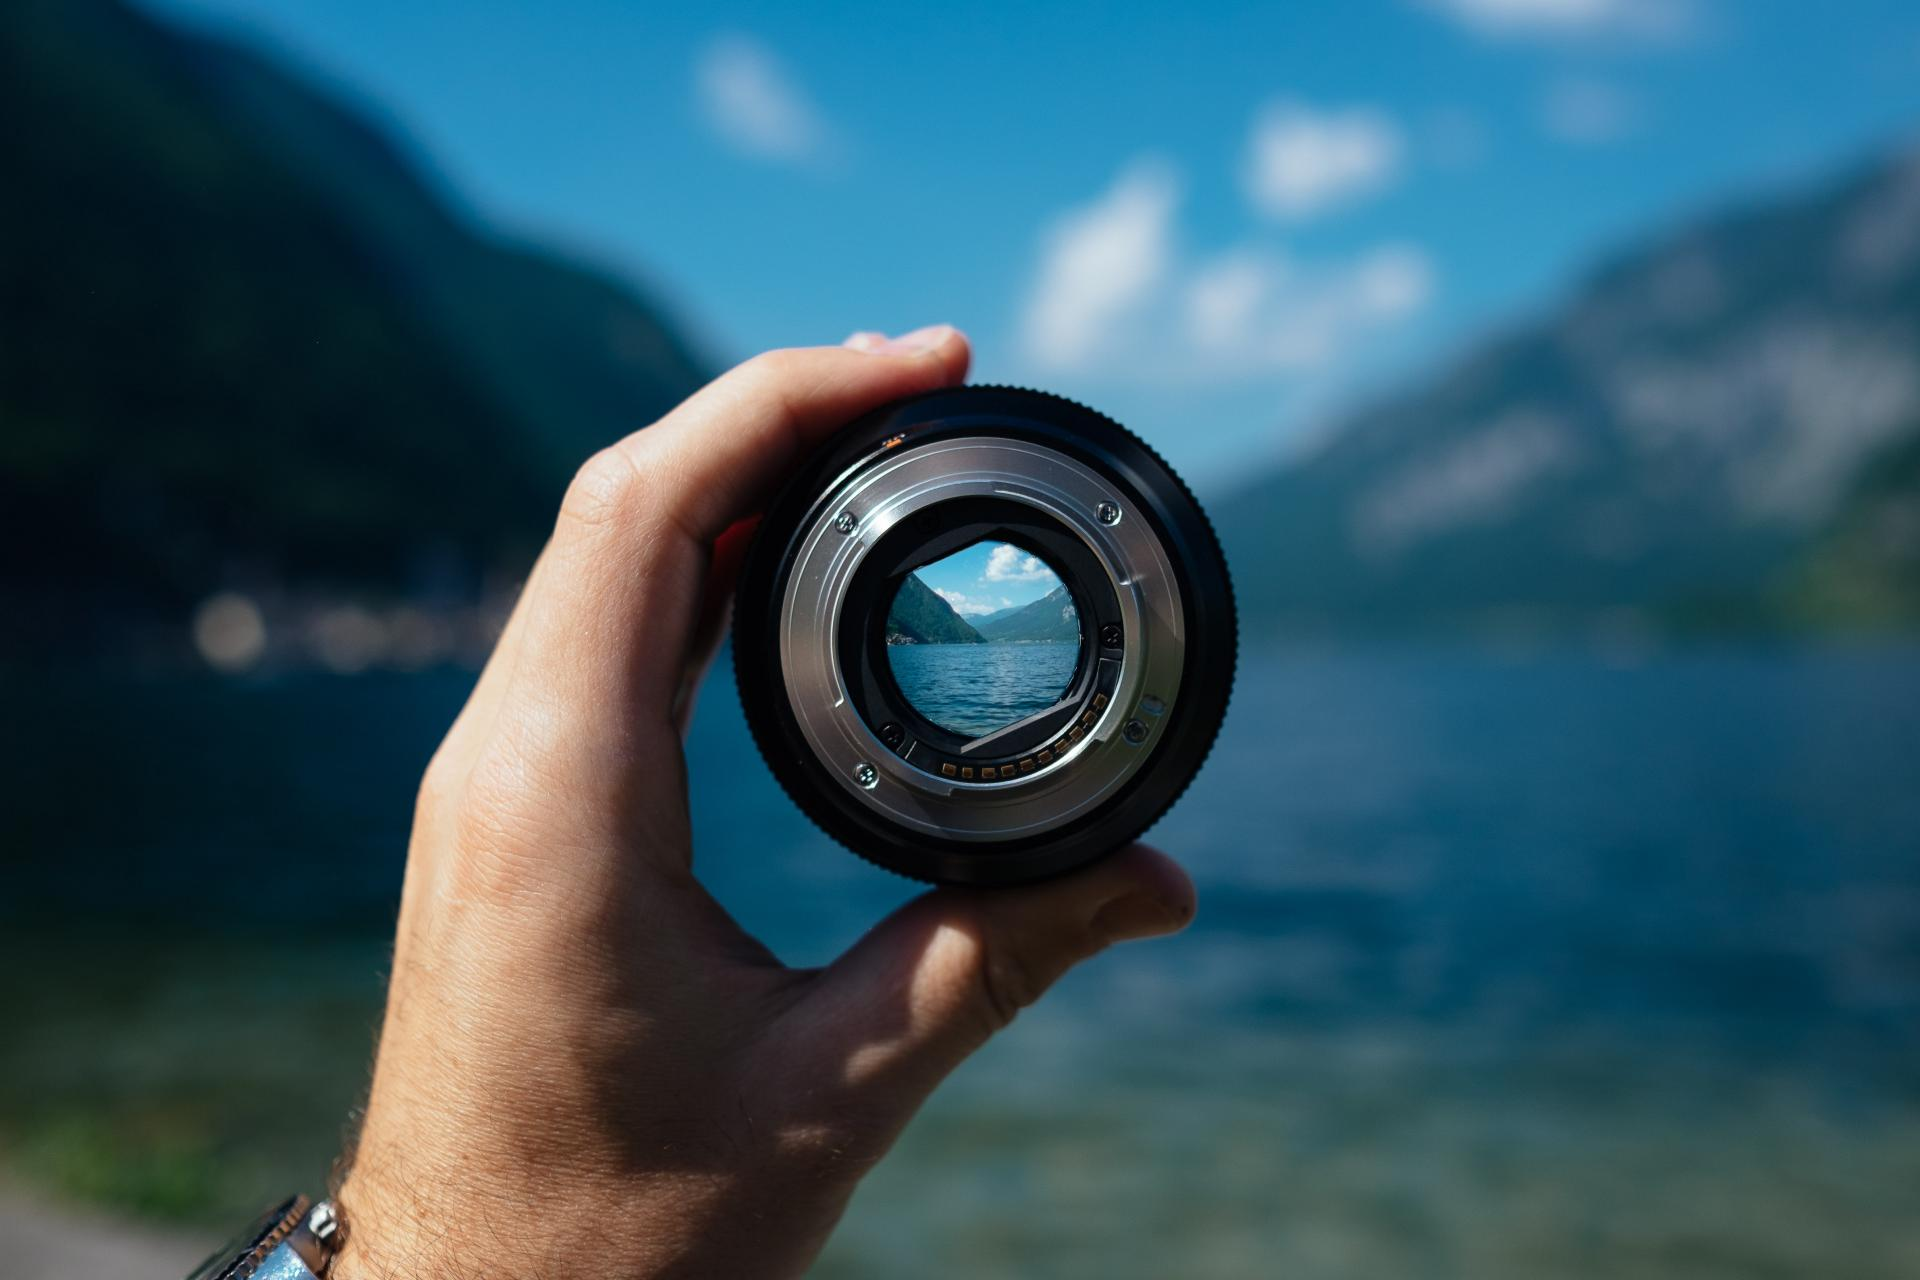 Hand holding lens on the backdrop of a lake - everything is blurred except what is focused by the lens, which is clear